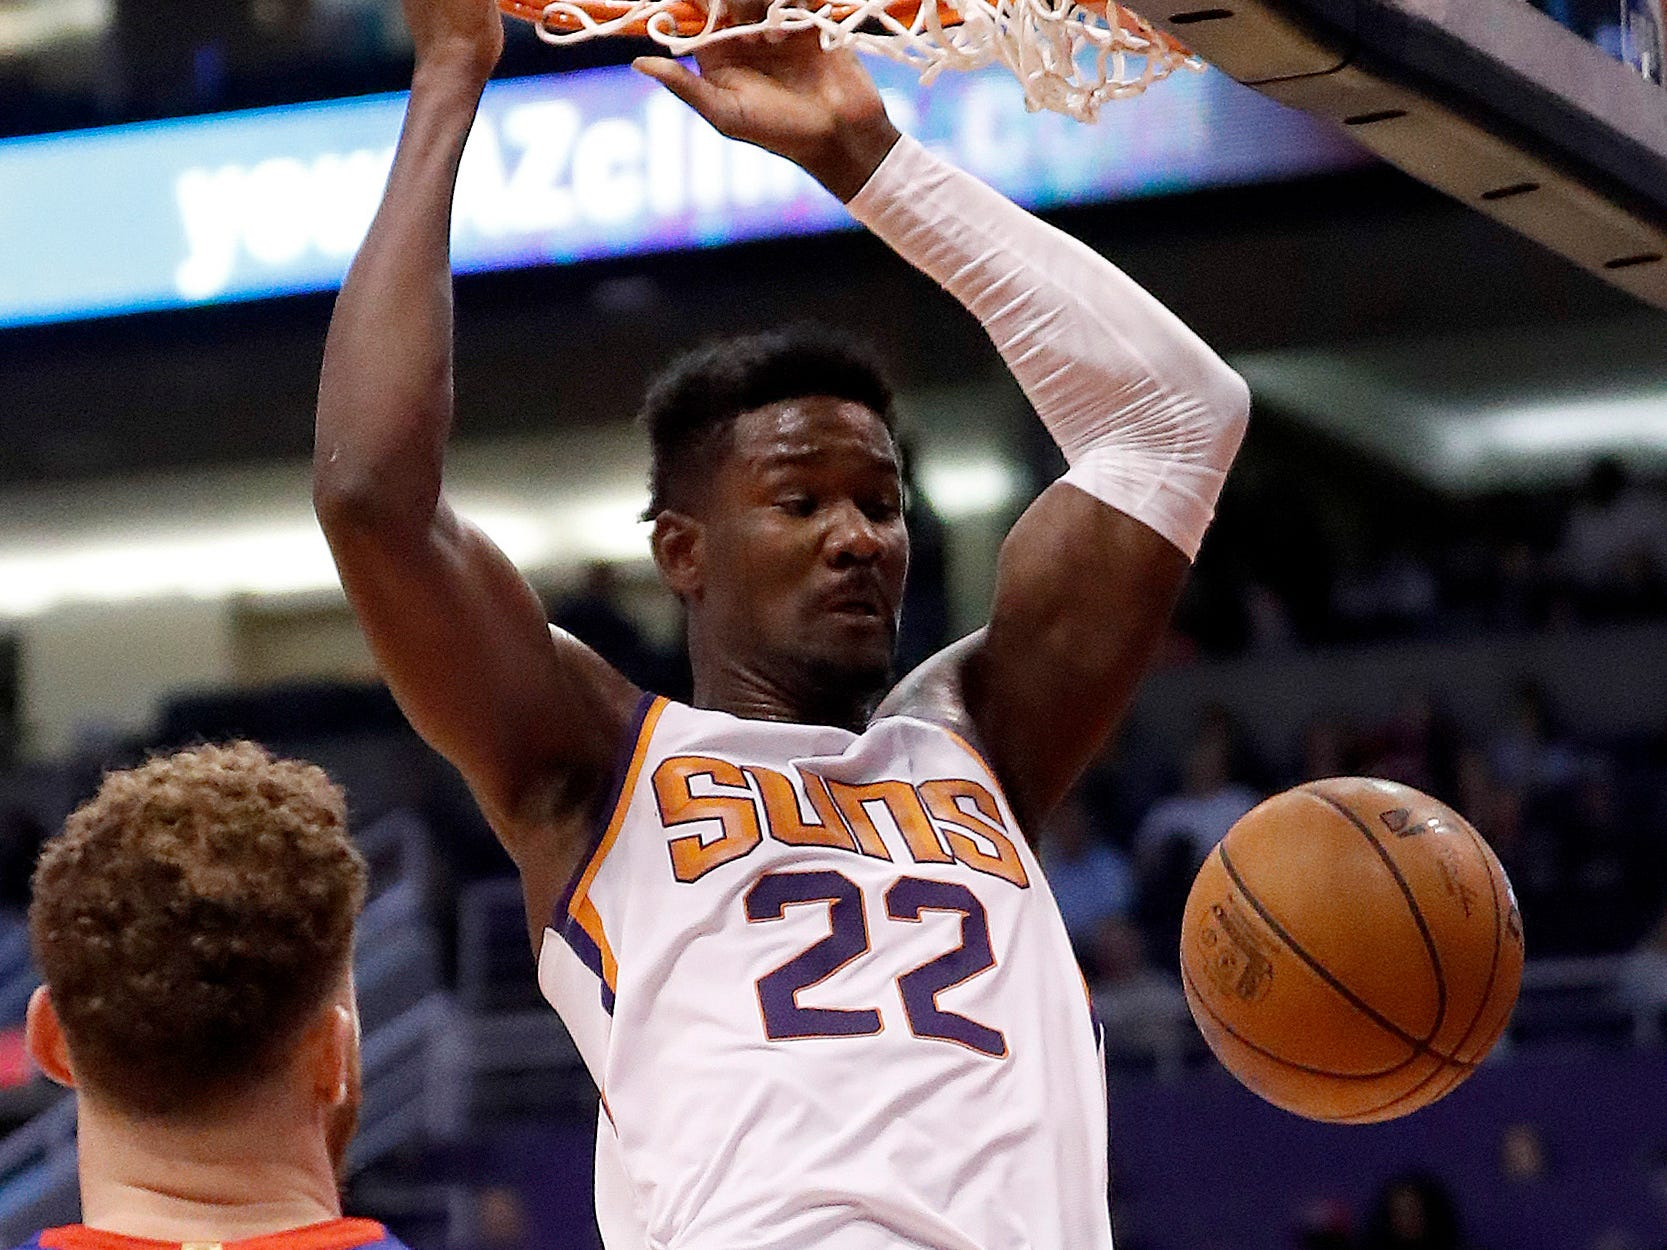 Phoenix Suns center Deandre Ayton (22) dunks as Detroit Pistons forward Blake Griffin (23) watches during the second half of an NBA basketball game Thursday, March 21, 2019, in Phoenix.